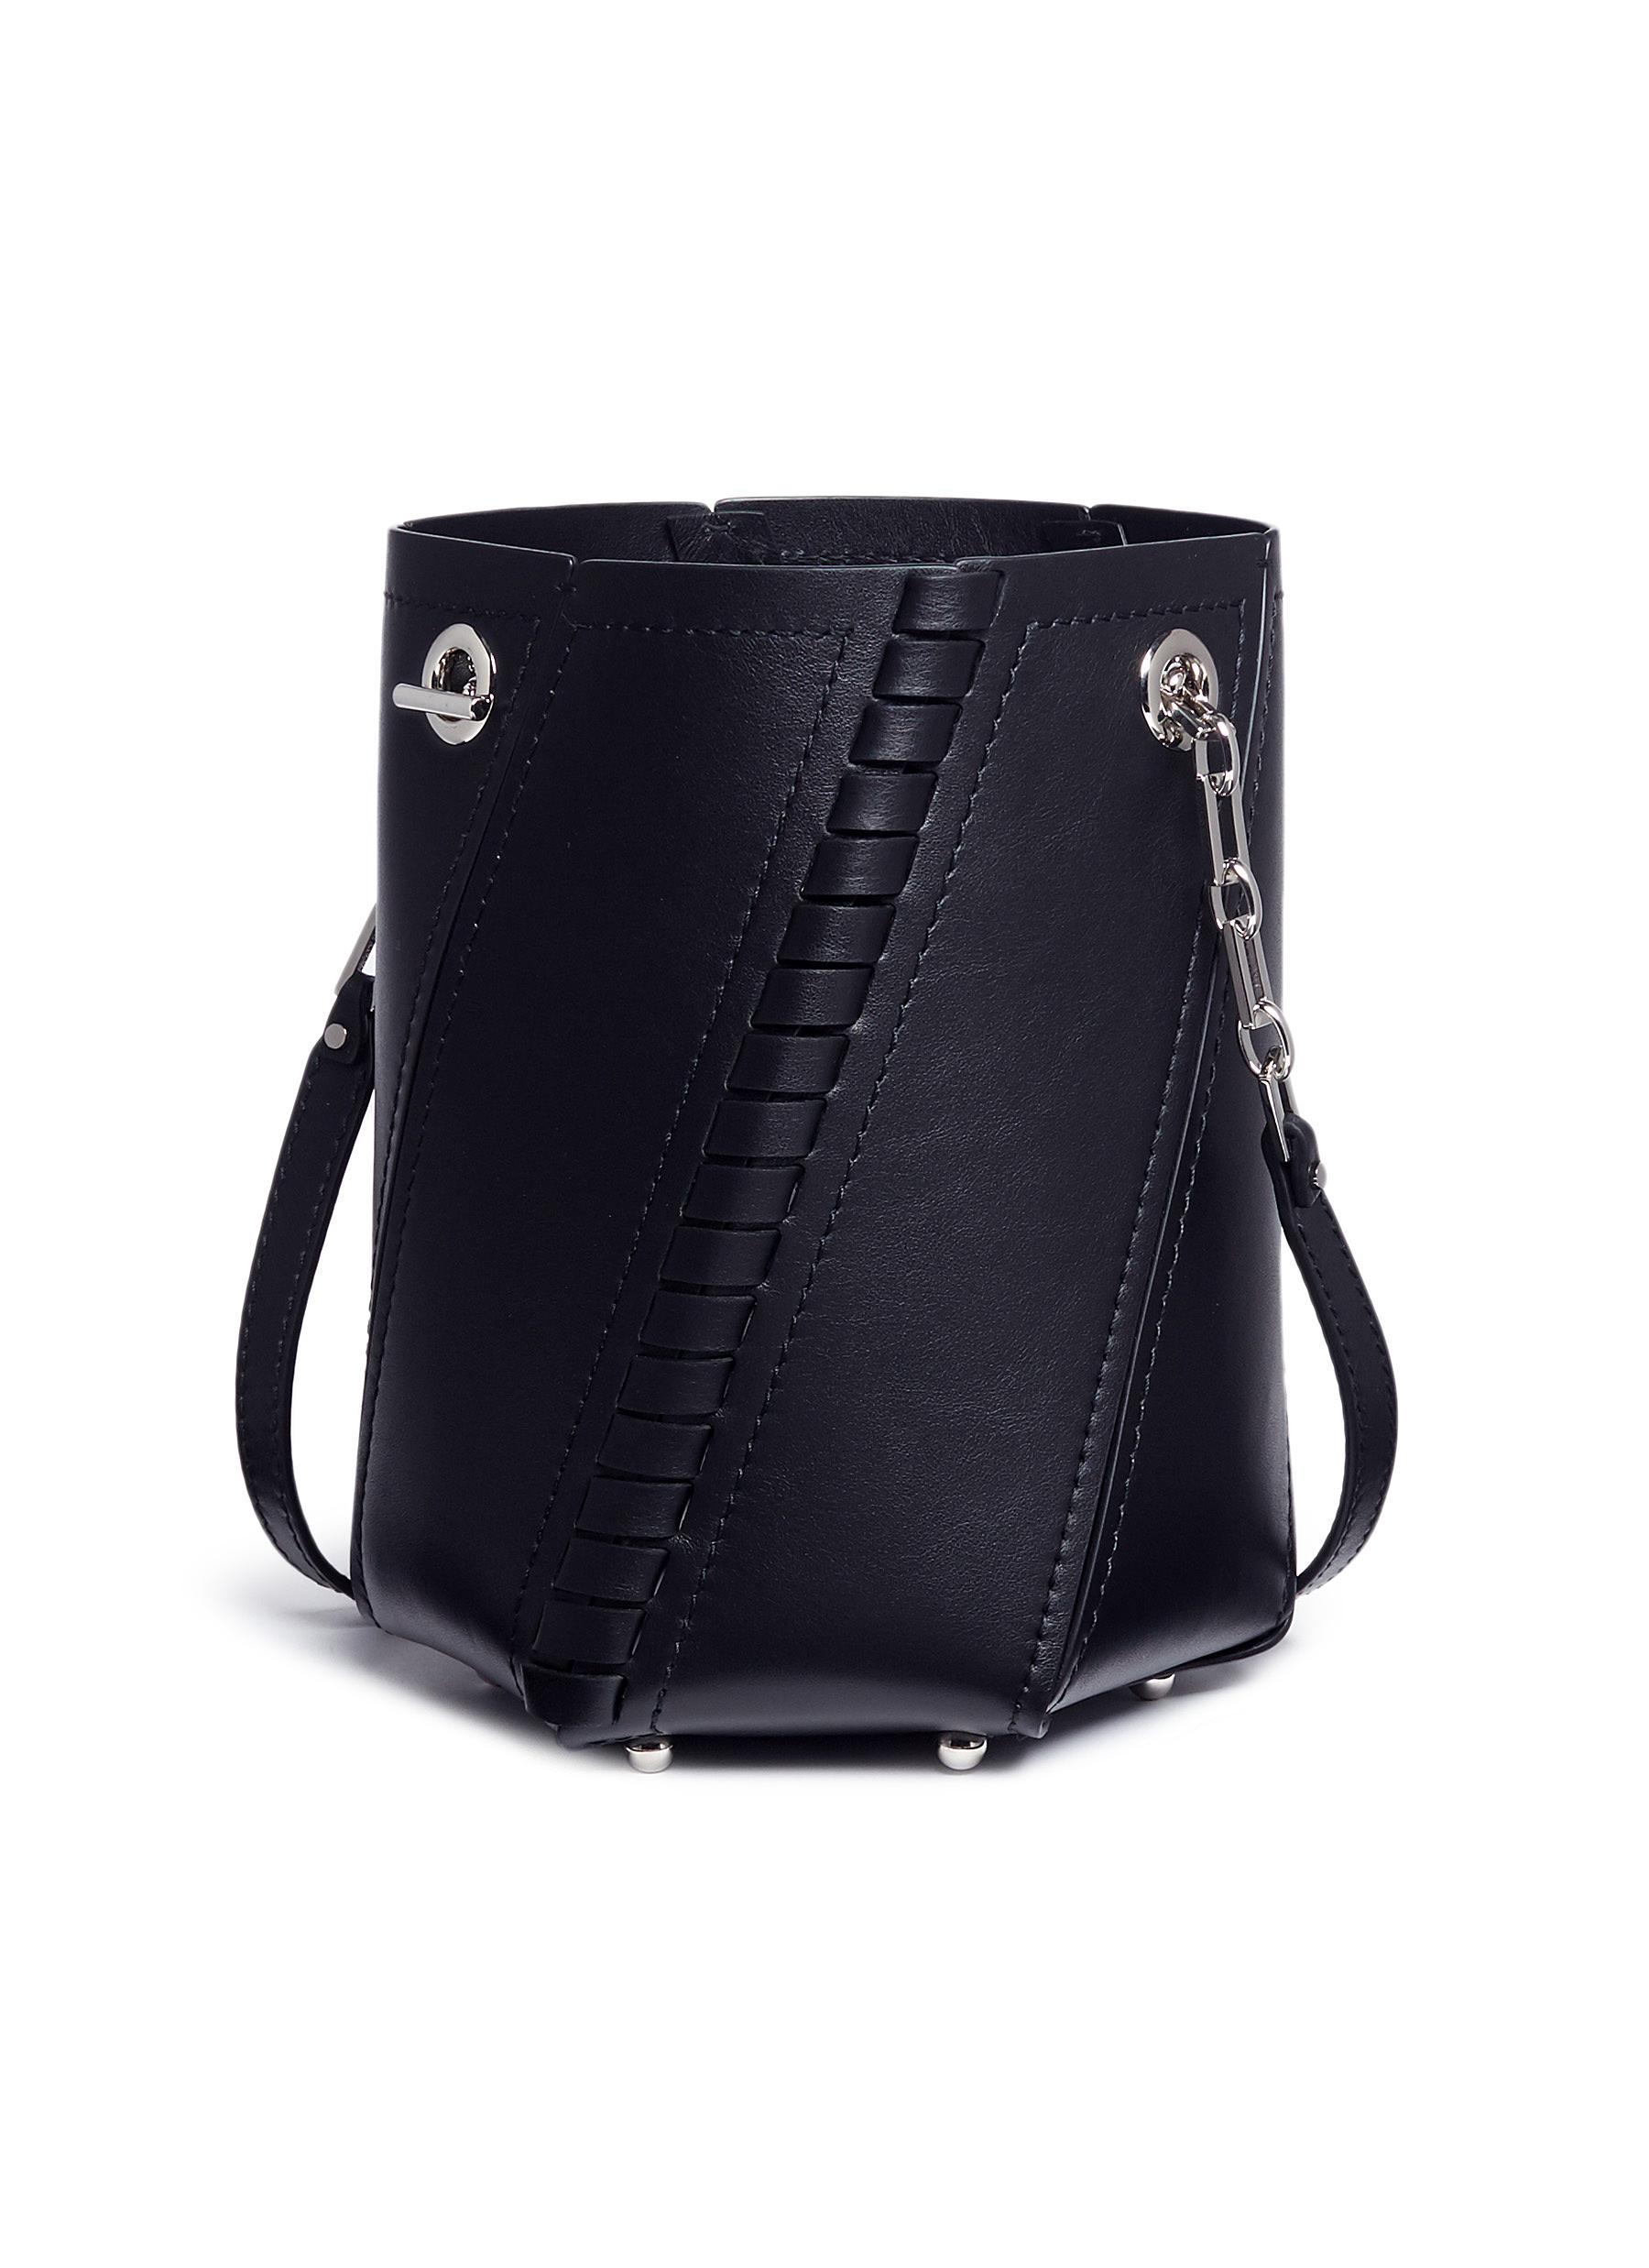 Hex mini bonded whipstich leather bucket bag by Proenza Schouler